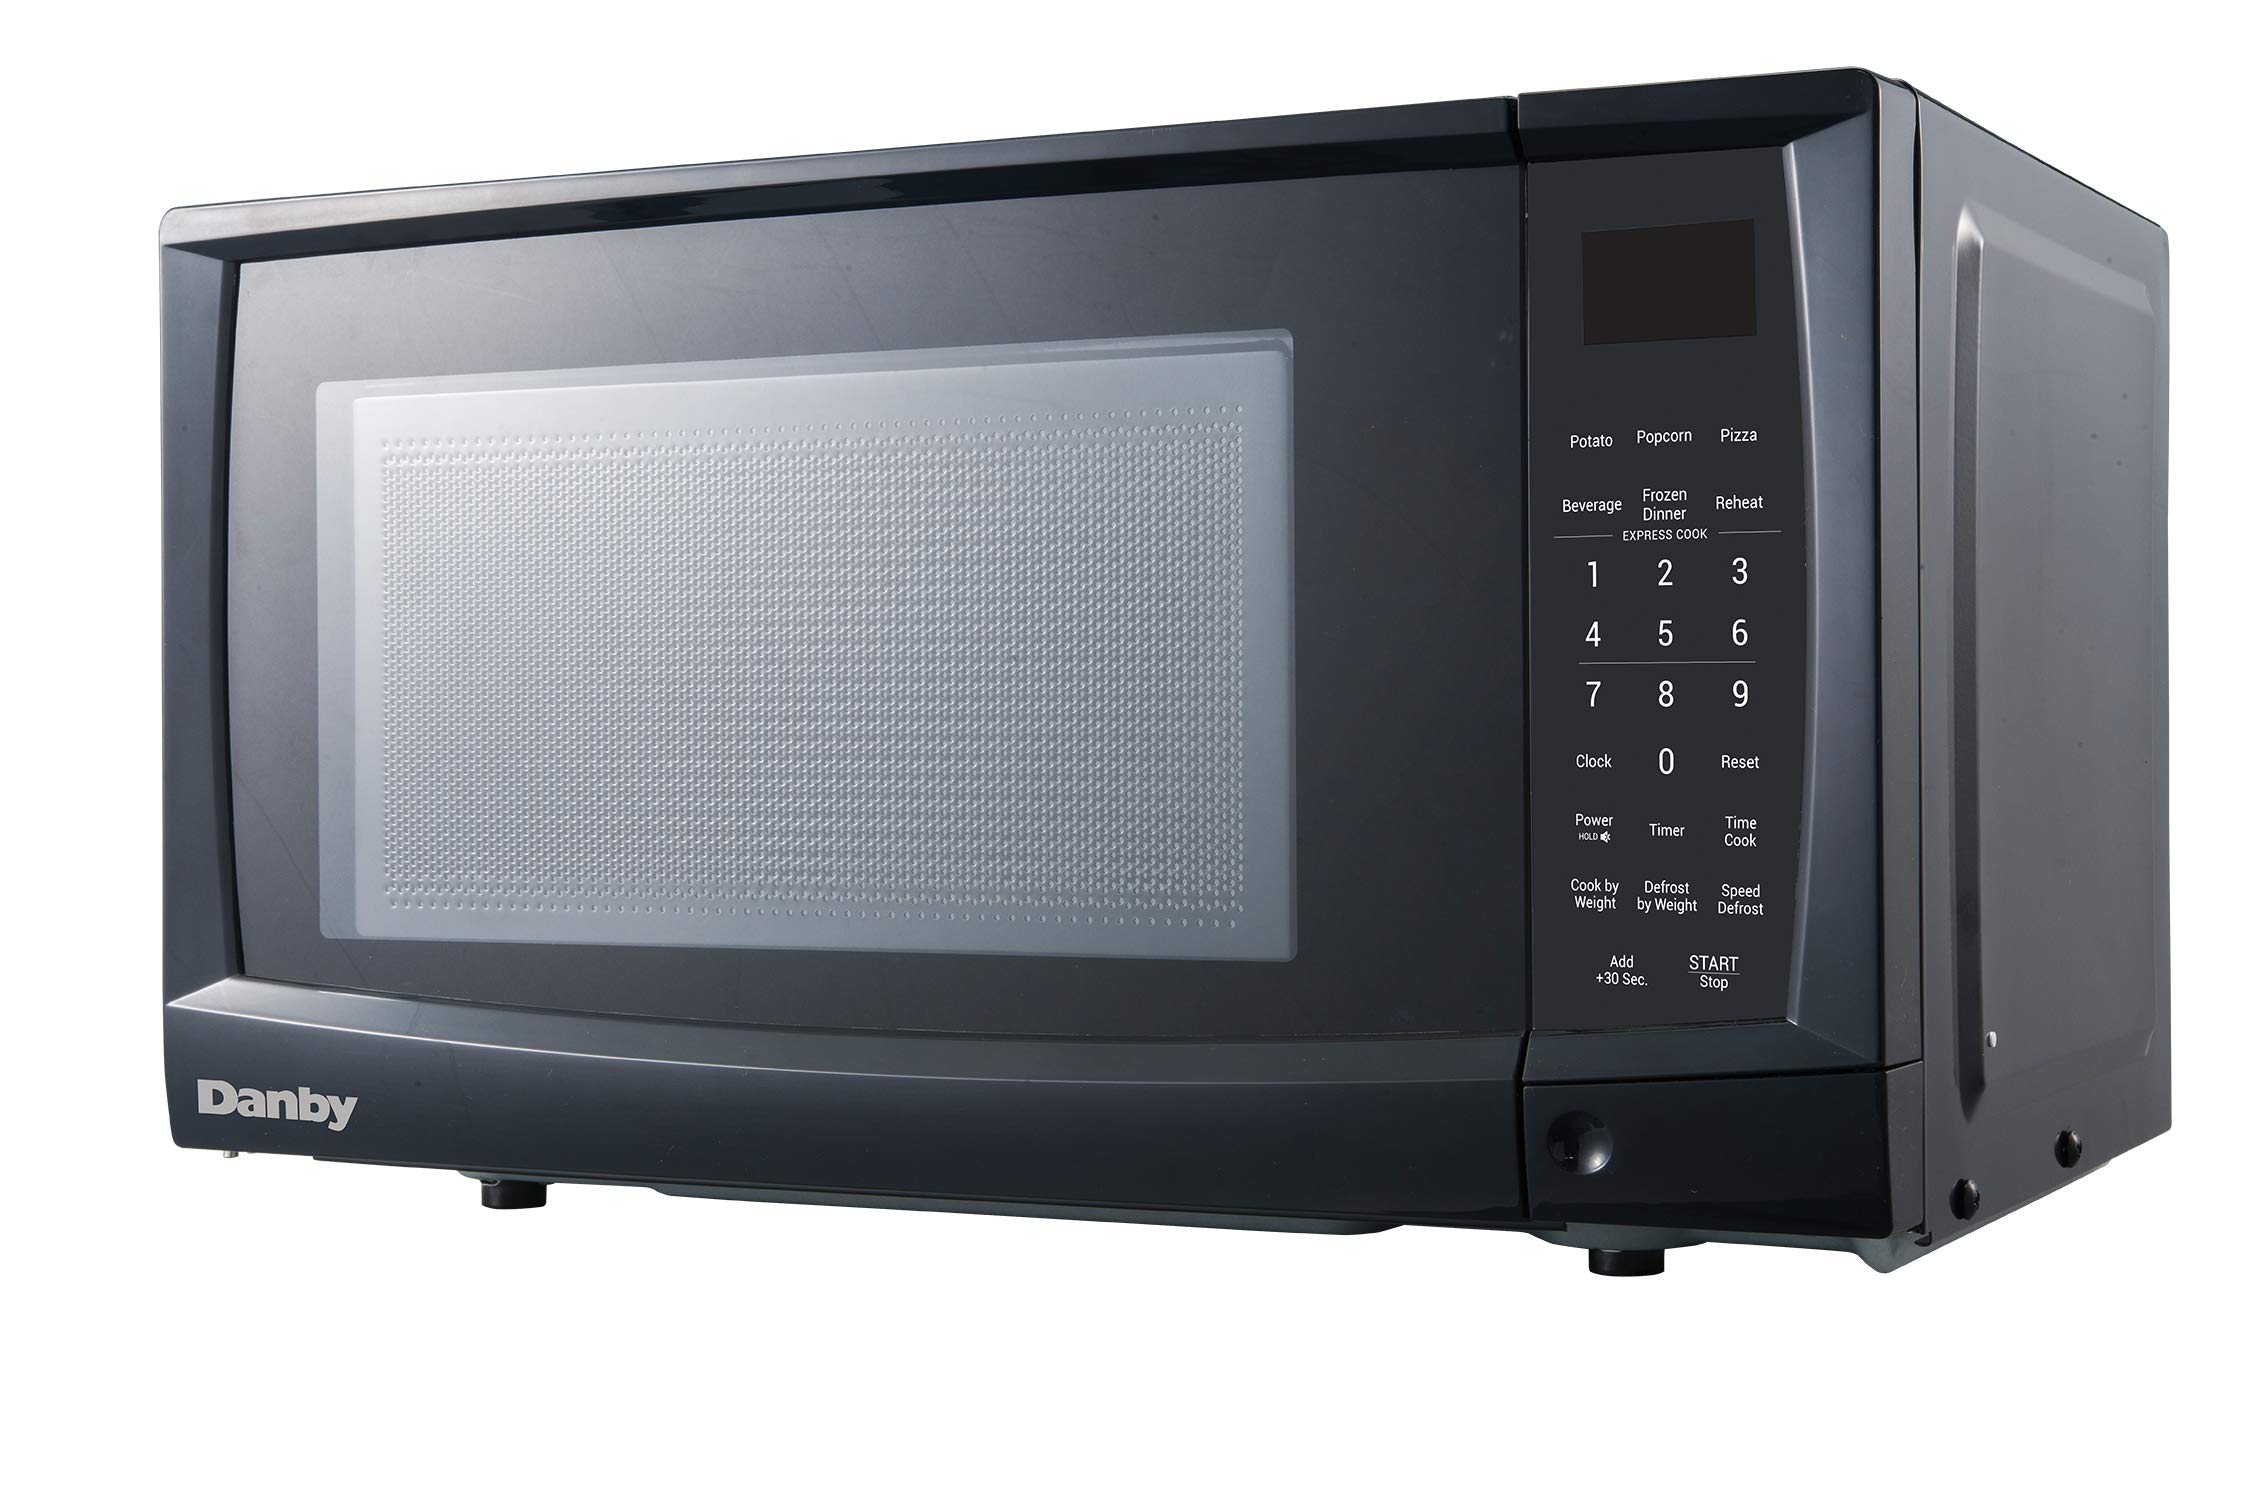 Danby DMW09A2BDB 0.9 cu. ft. Microwave Oven, Black.9 cu.ft, by Danby